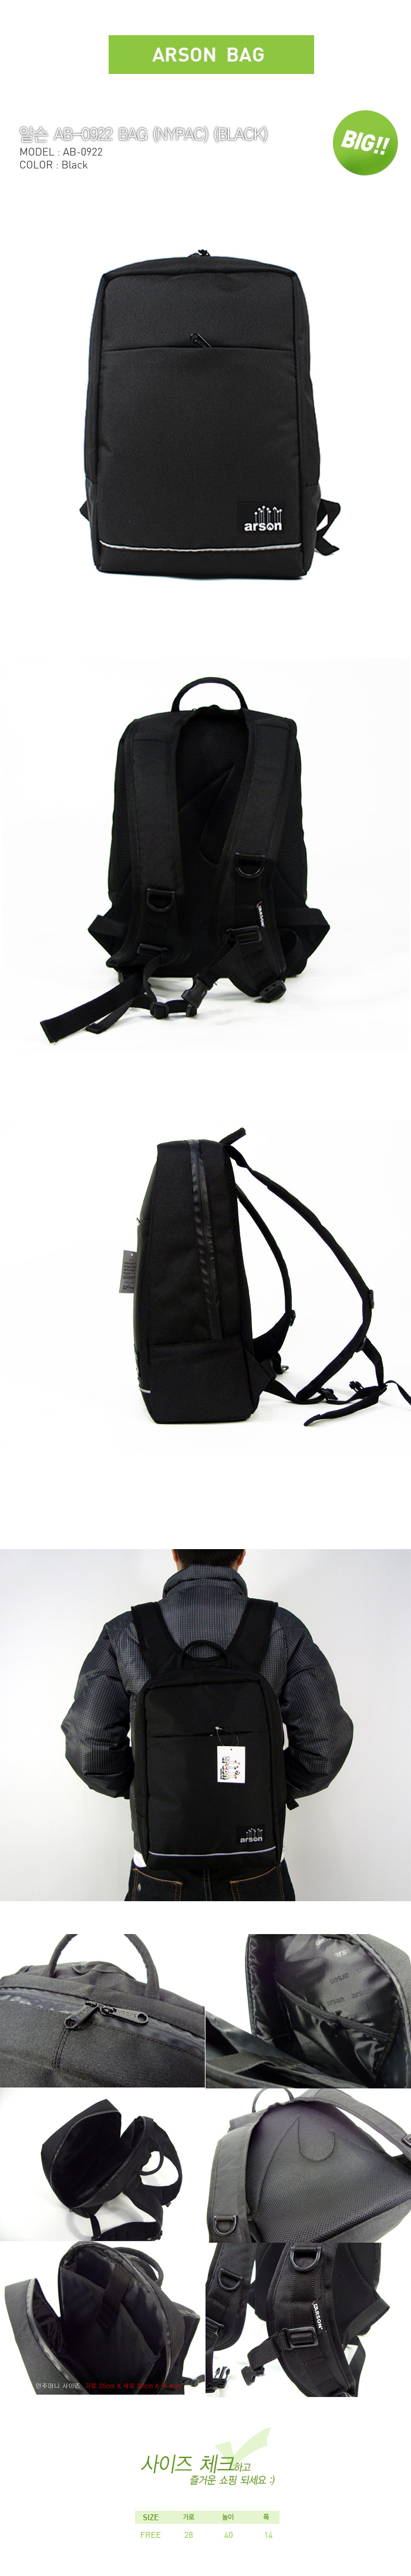 [ ARSON ] AB-0922 Nypac (Black)/Backpack School Bag